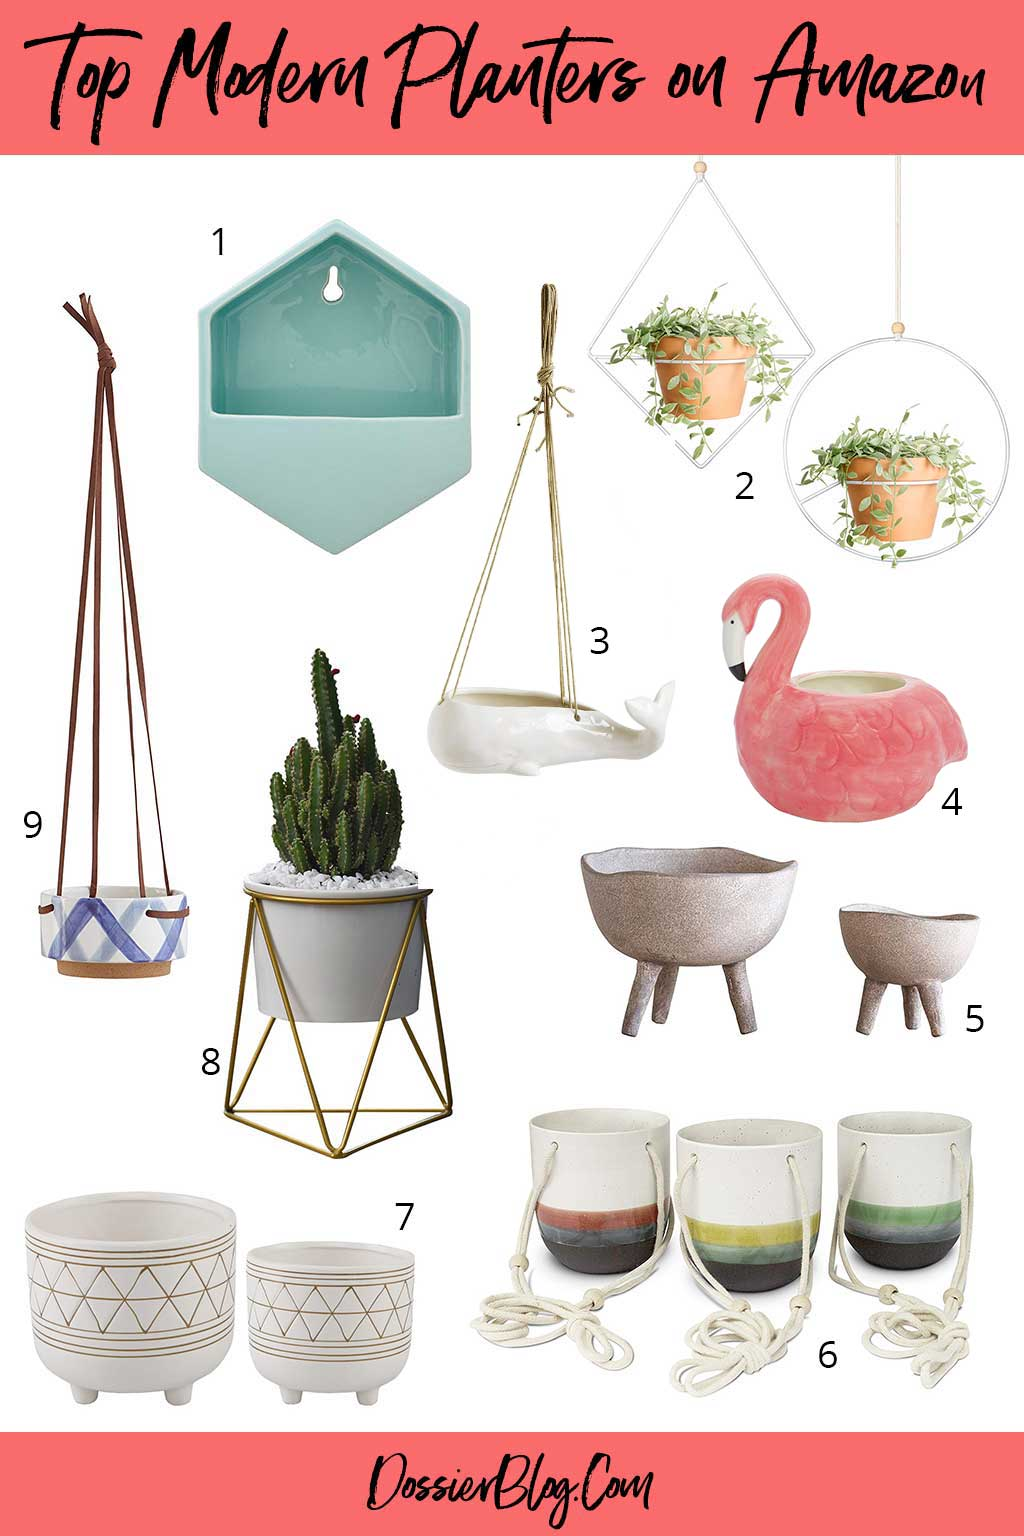 Round up: Modern planters you can find on Amazon | Dossier Blog